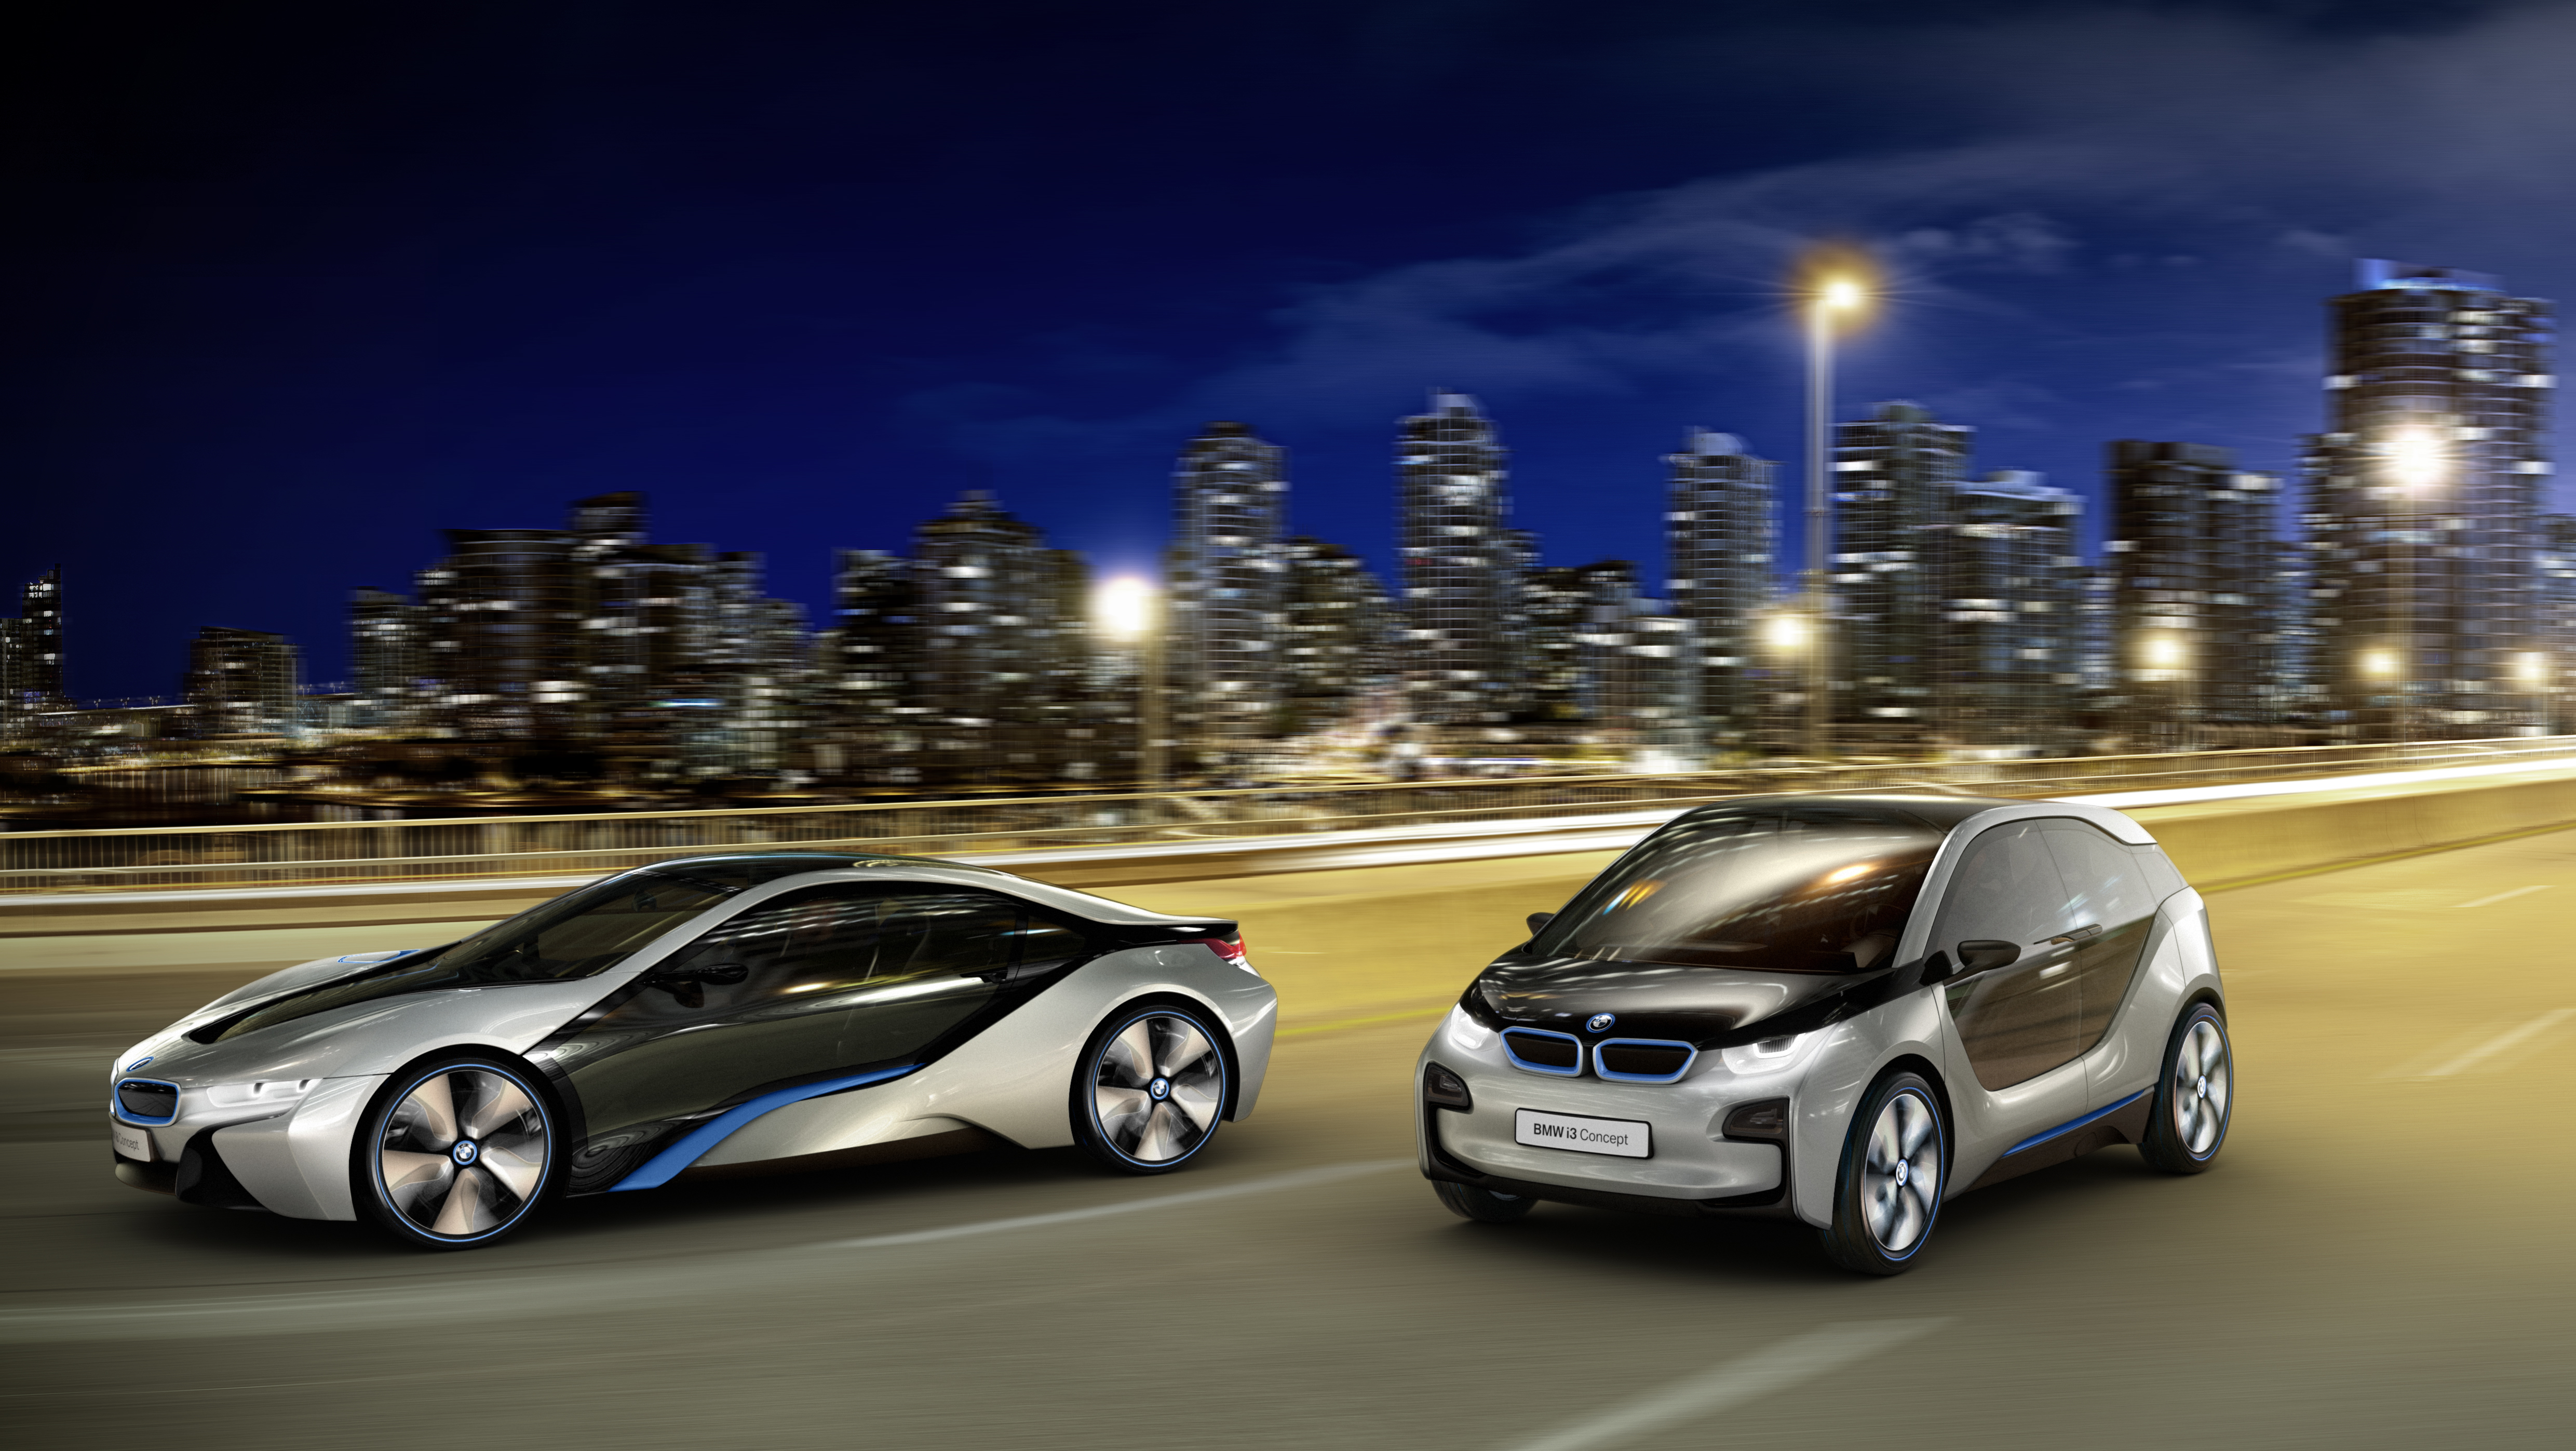 Bmw i3 and i8 glass replacement german motors collision for German motors collision center